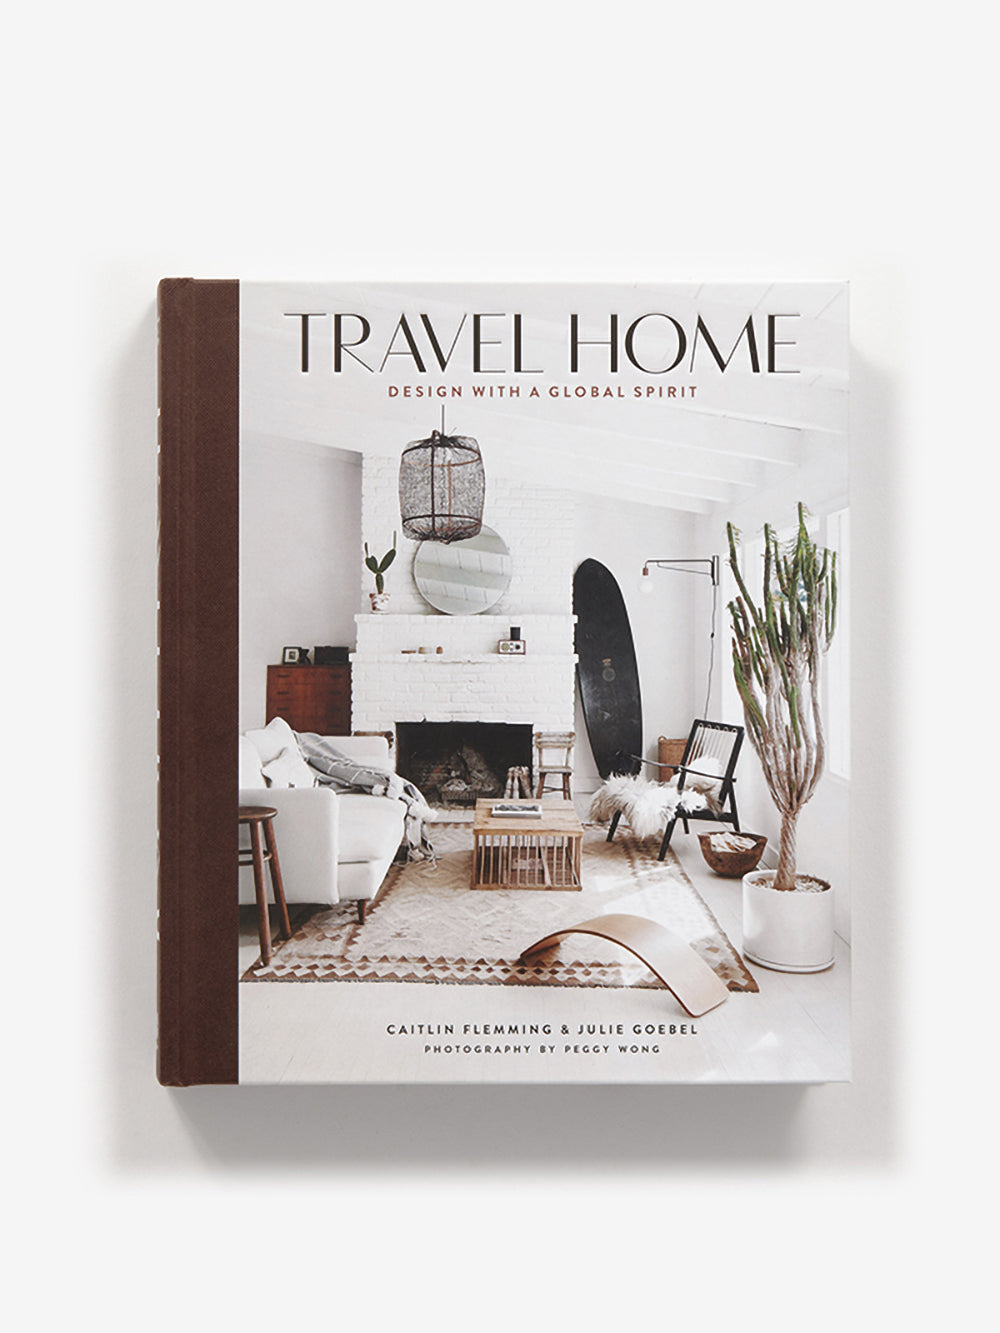 travel home by caitlin flemming + julie goebel